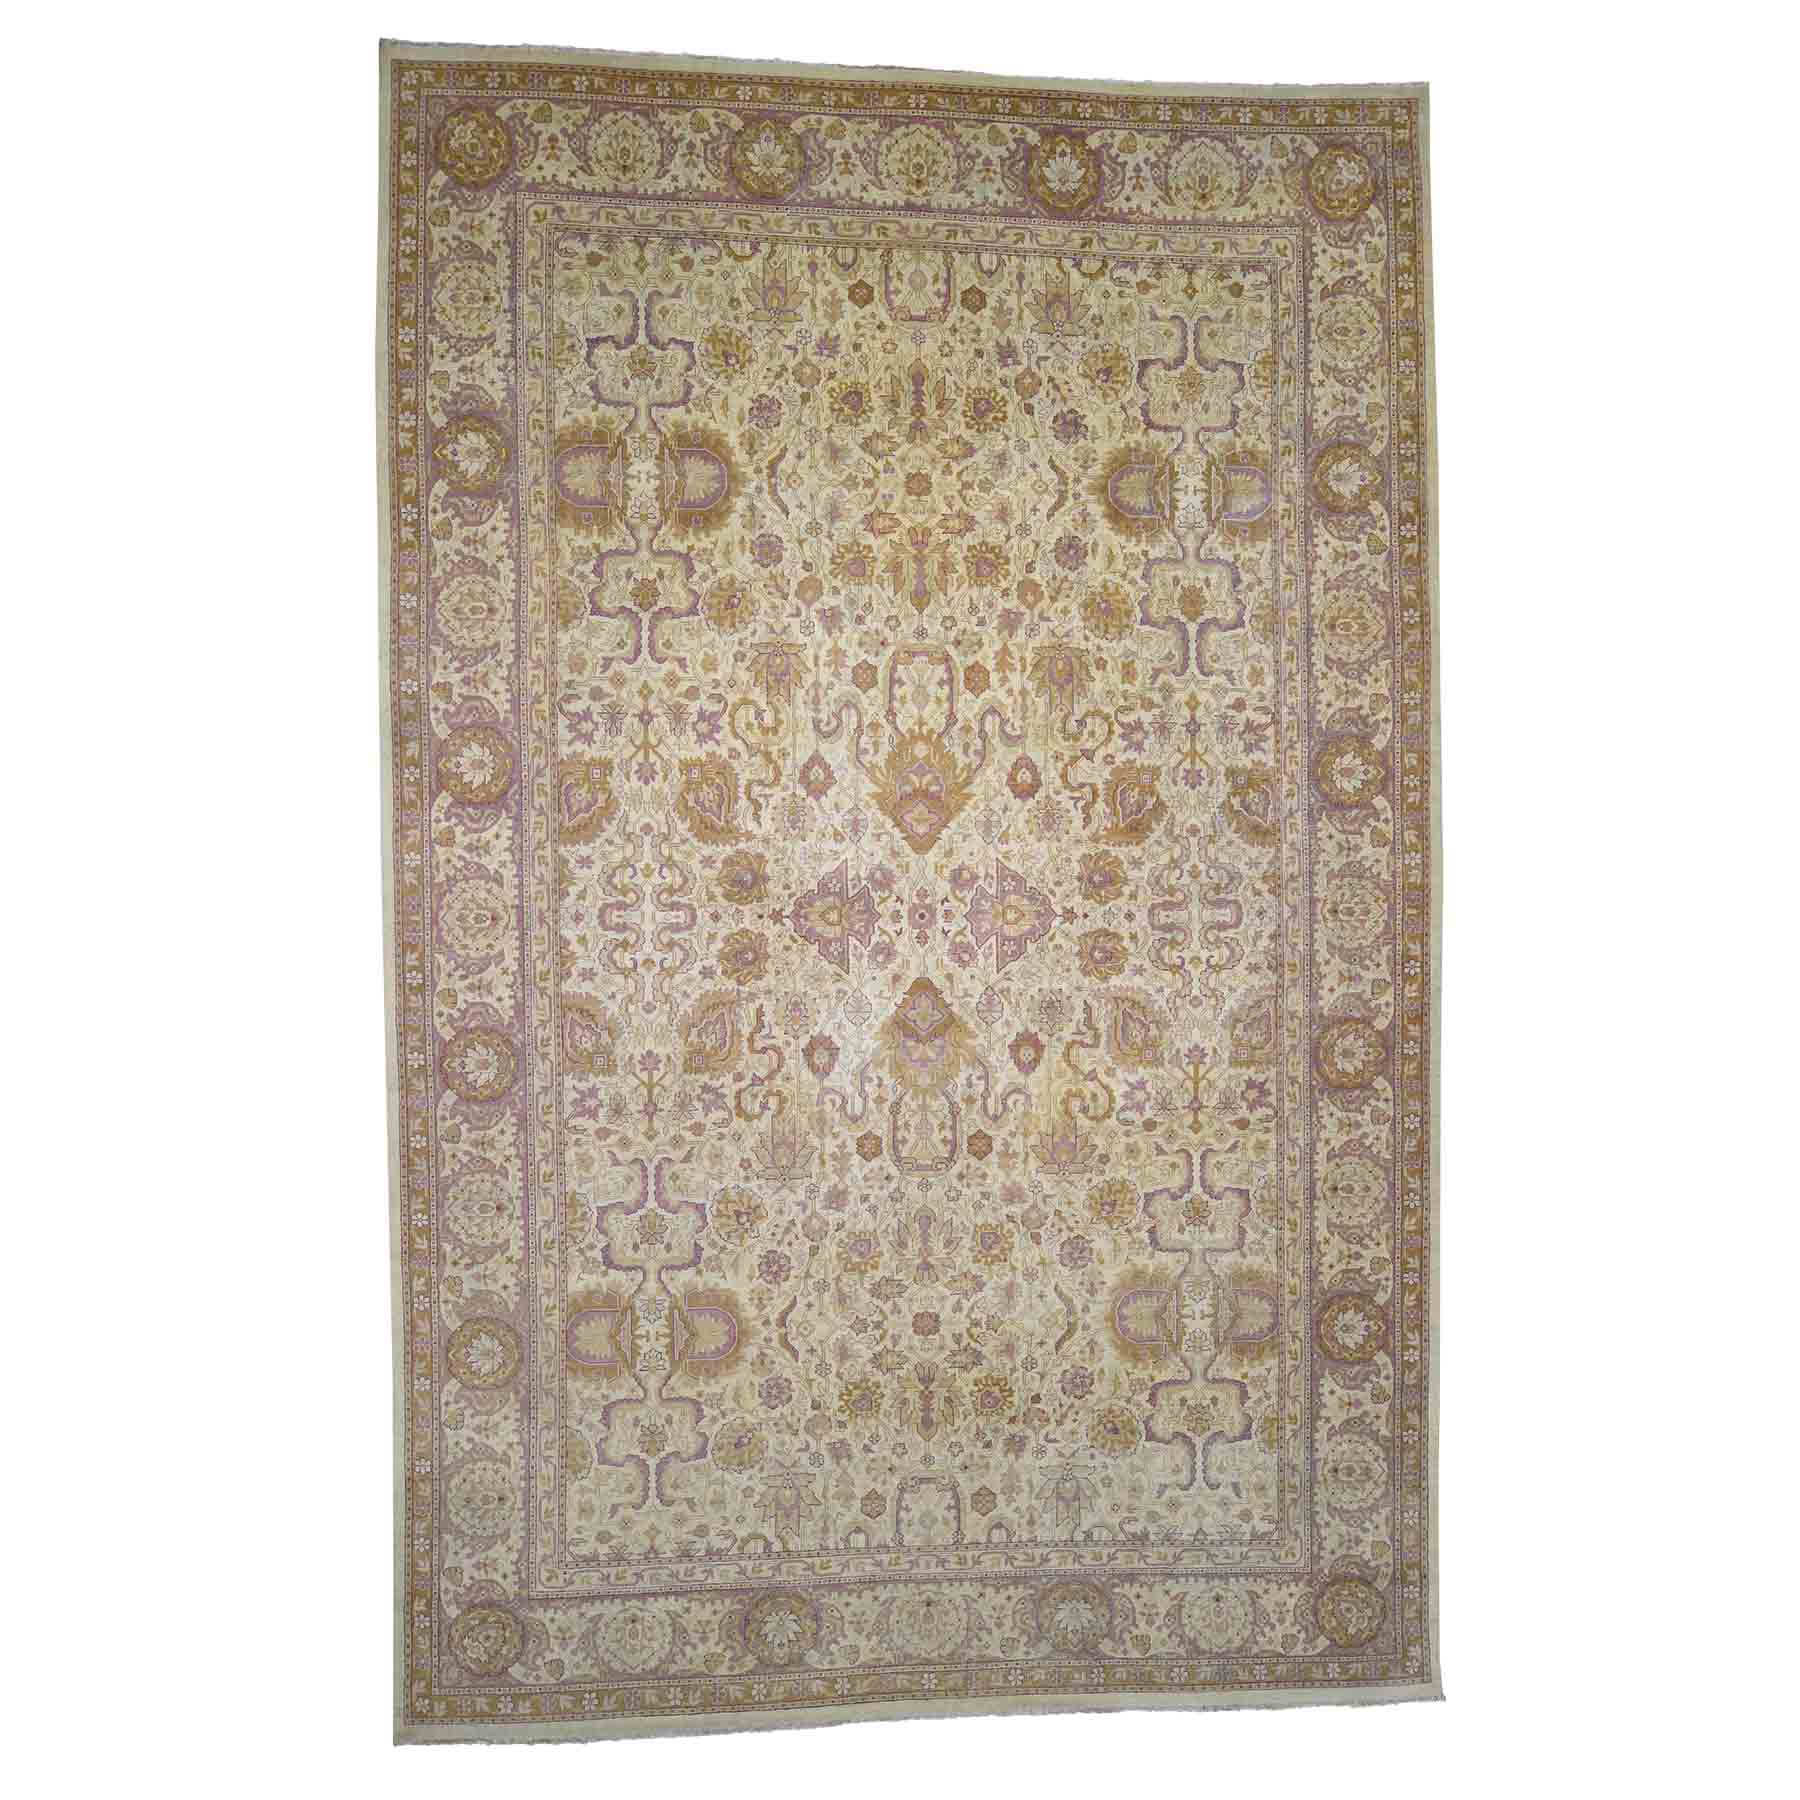 "10'7""X16'4"" Antique Mughal Amritsar Good Condition Even Wear Hand-Knotted Oriental Oversize Rug moadaa7e"